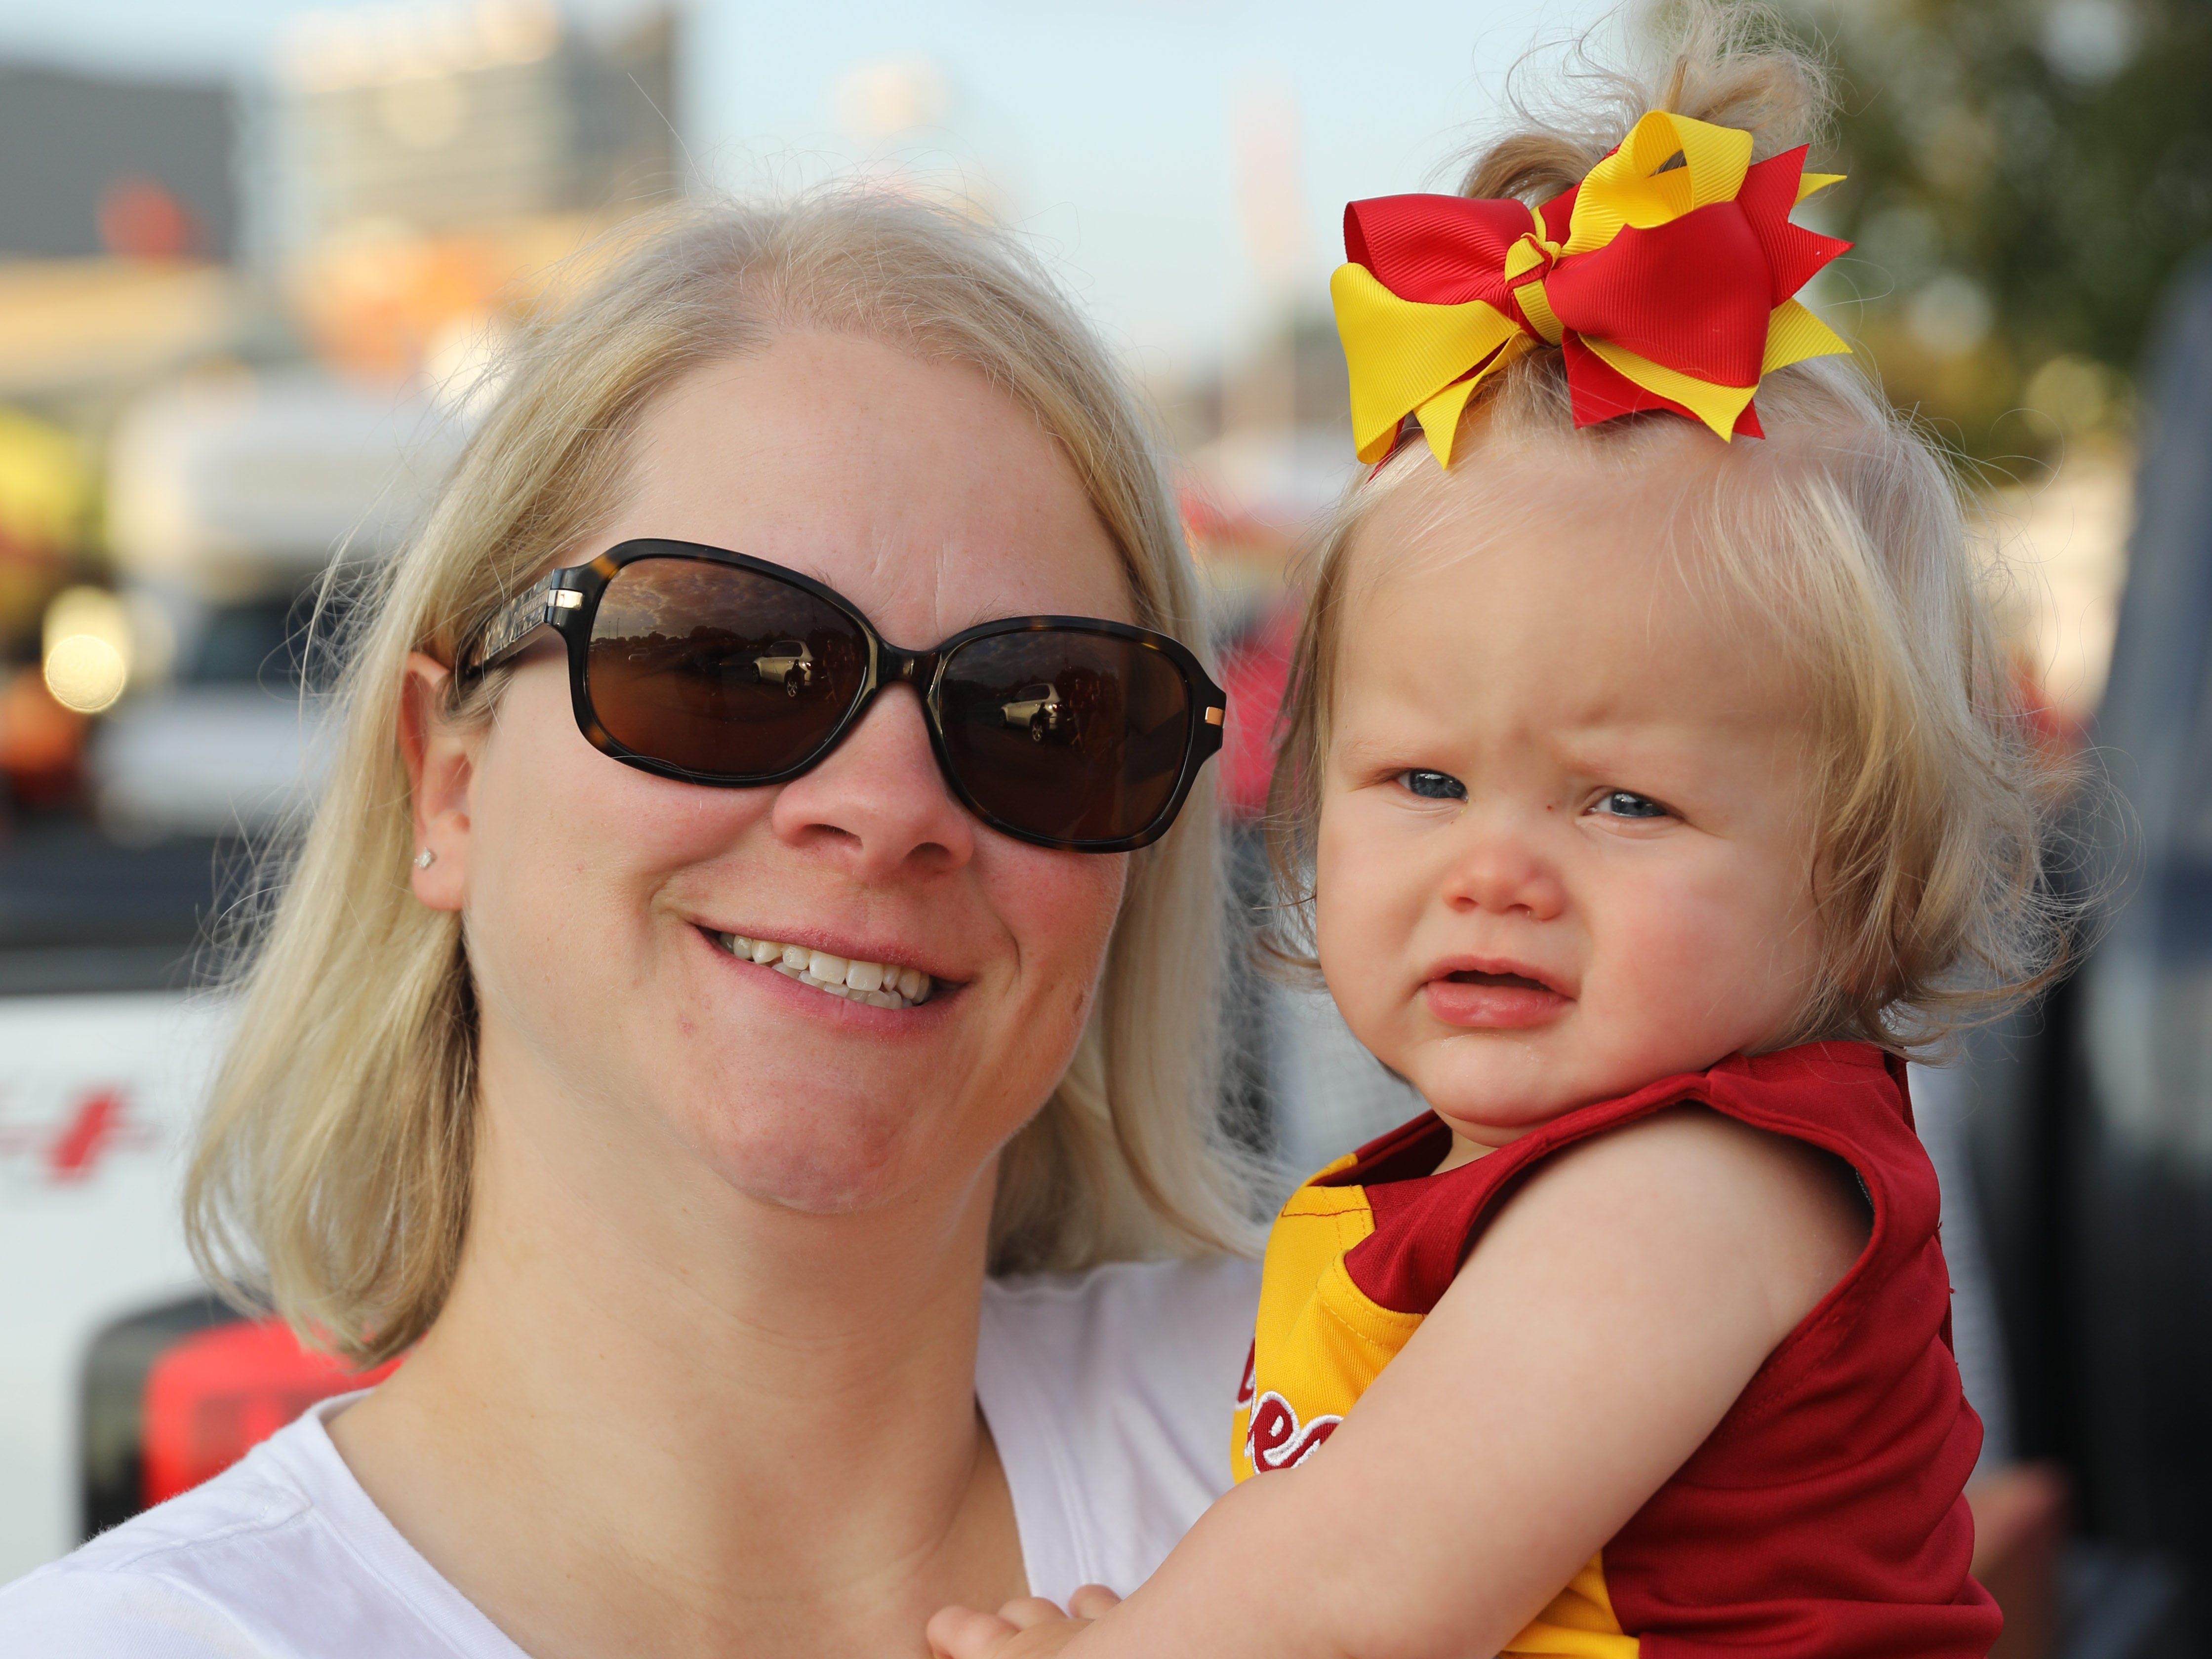 Kirstin Bourke and Breegan Bourke, 9-months, both of Ankeny, Saturday, Sept. 15, 2018, before the Iowa State football game against Oklahoma in Ames.